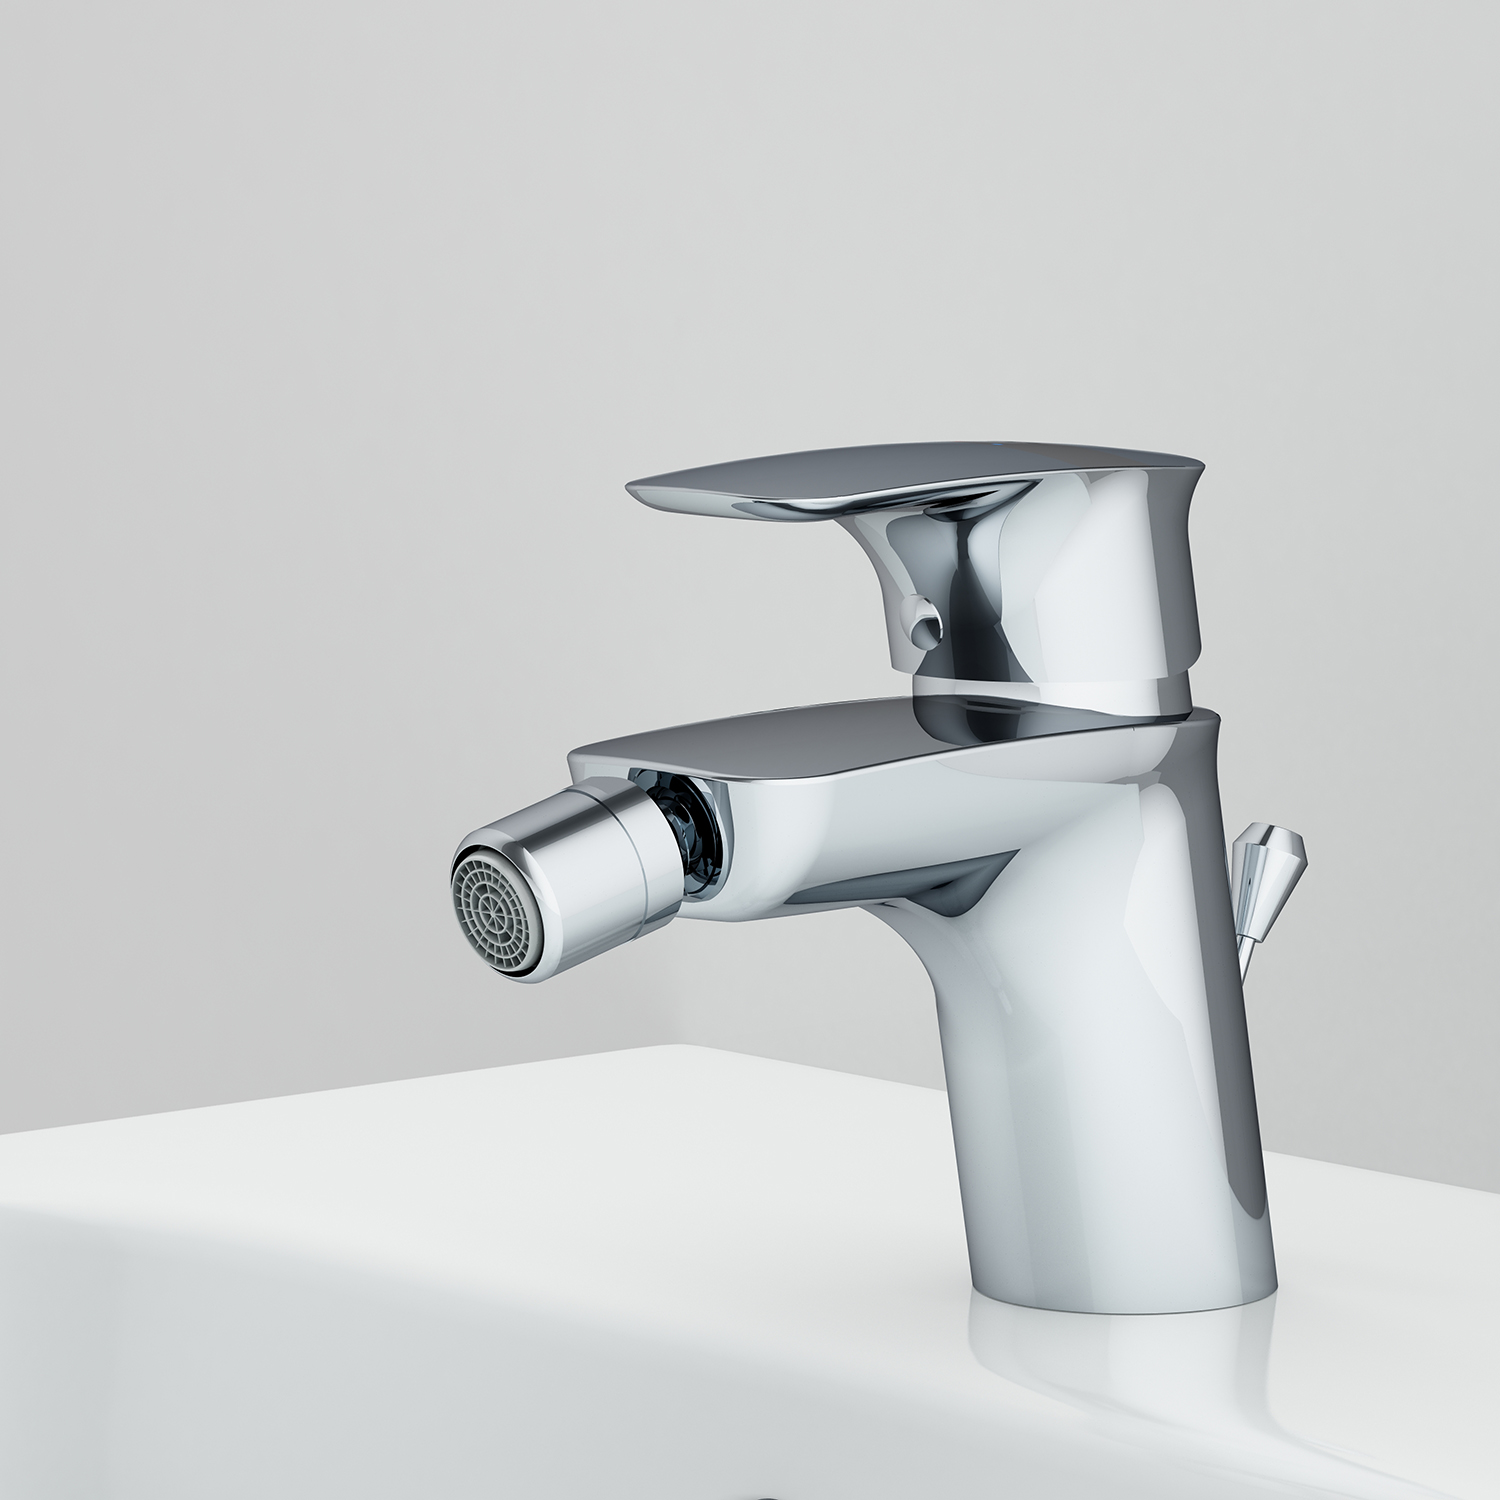 F71A83100 Single-lever bidet mixer with waste set